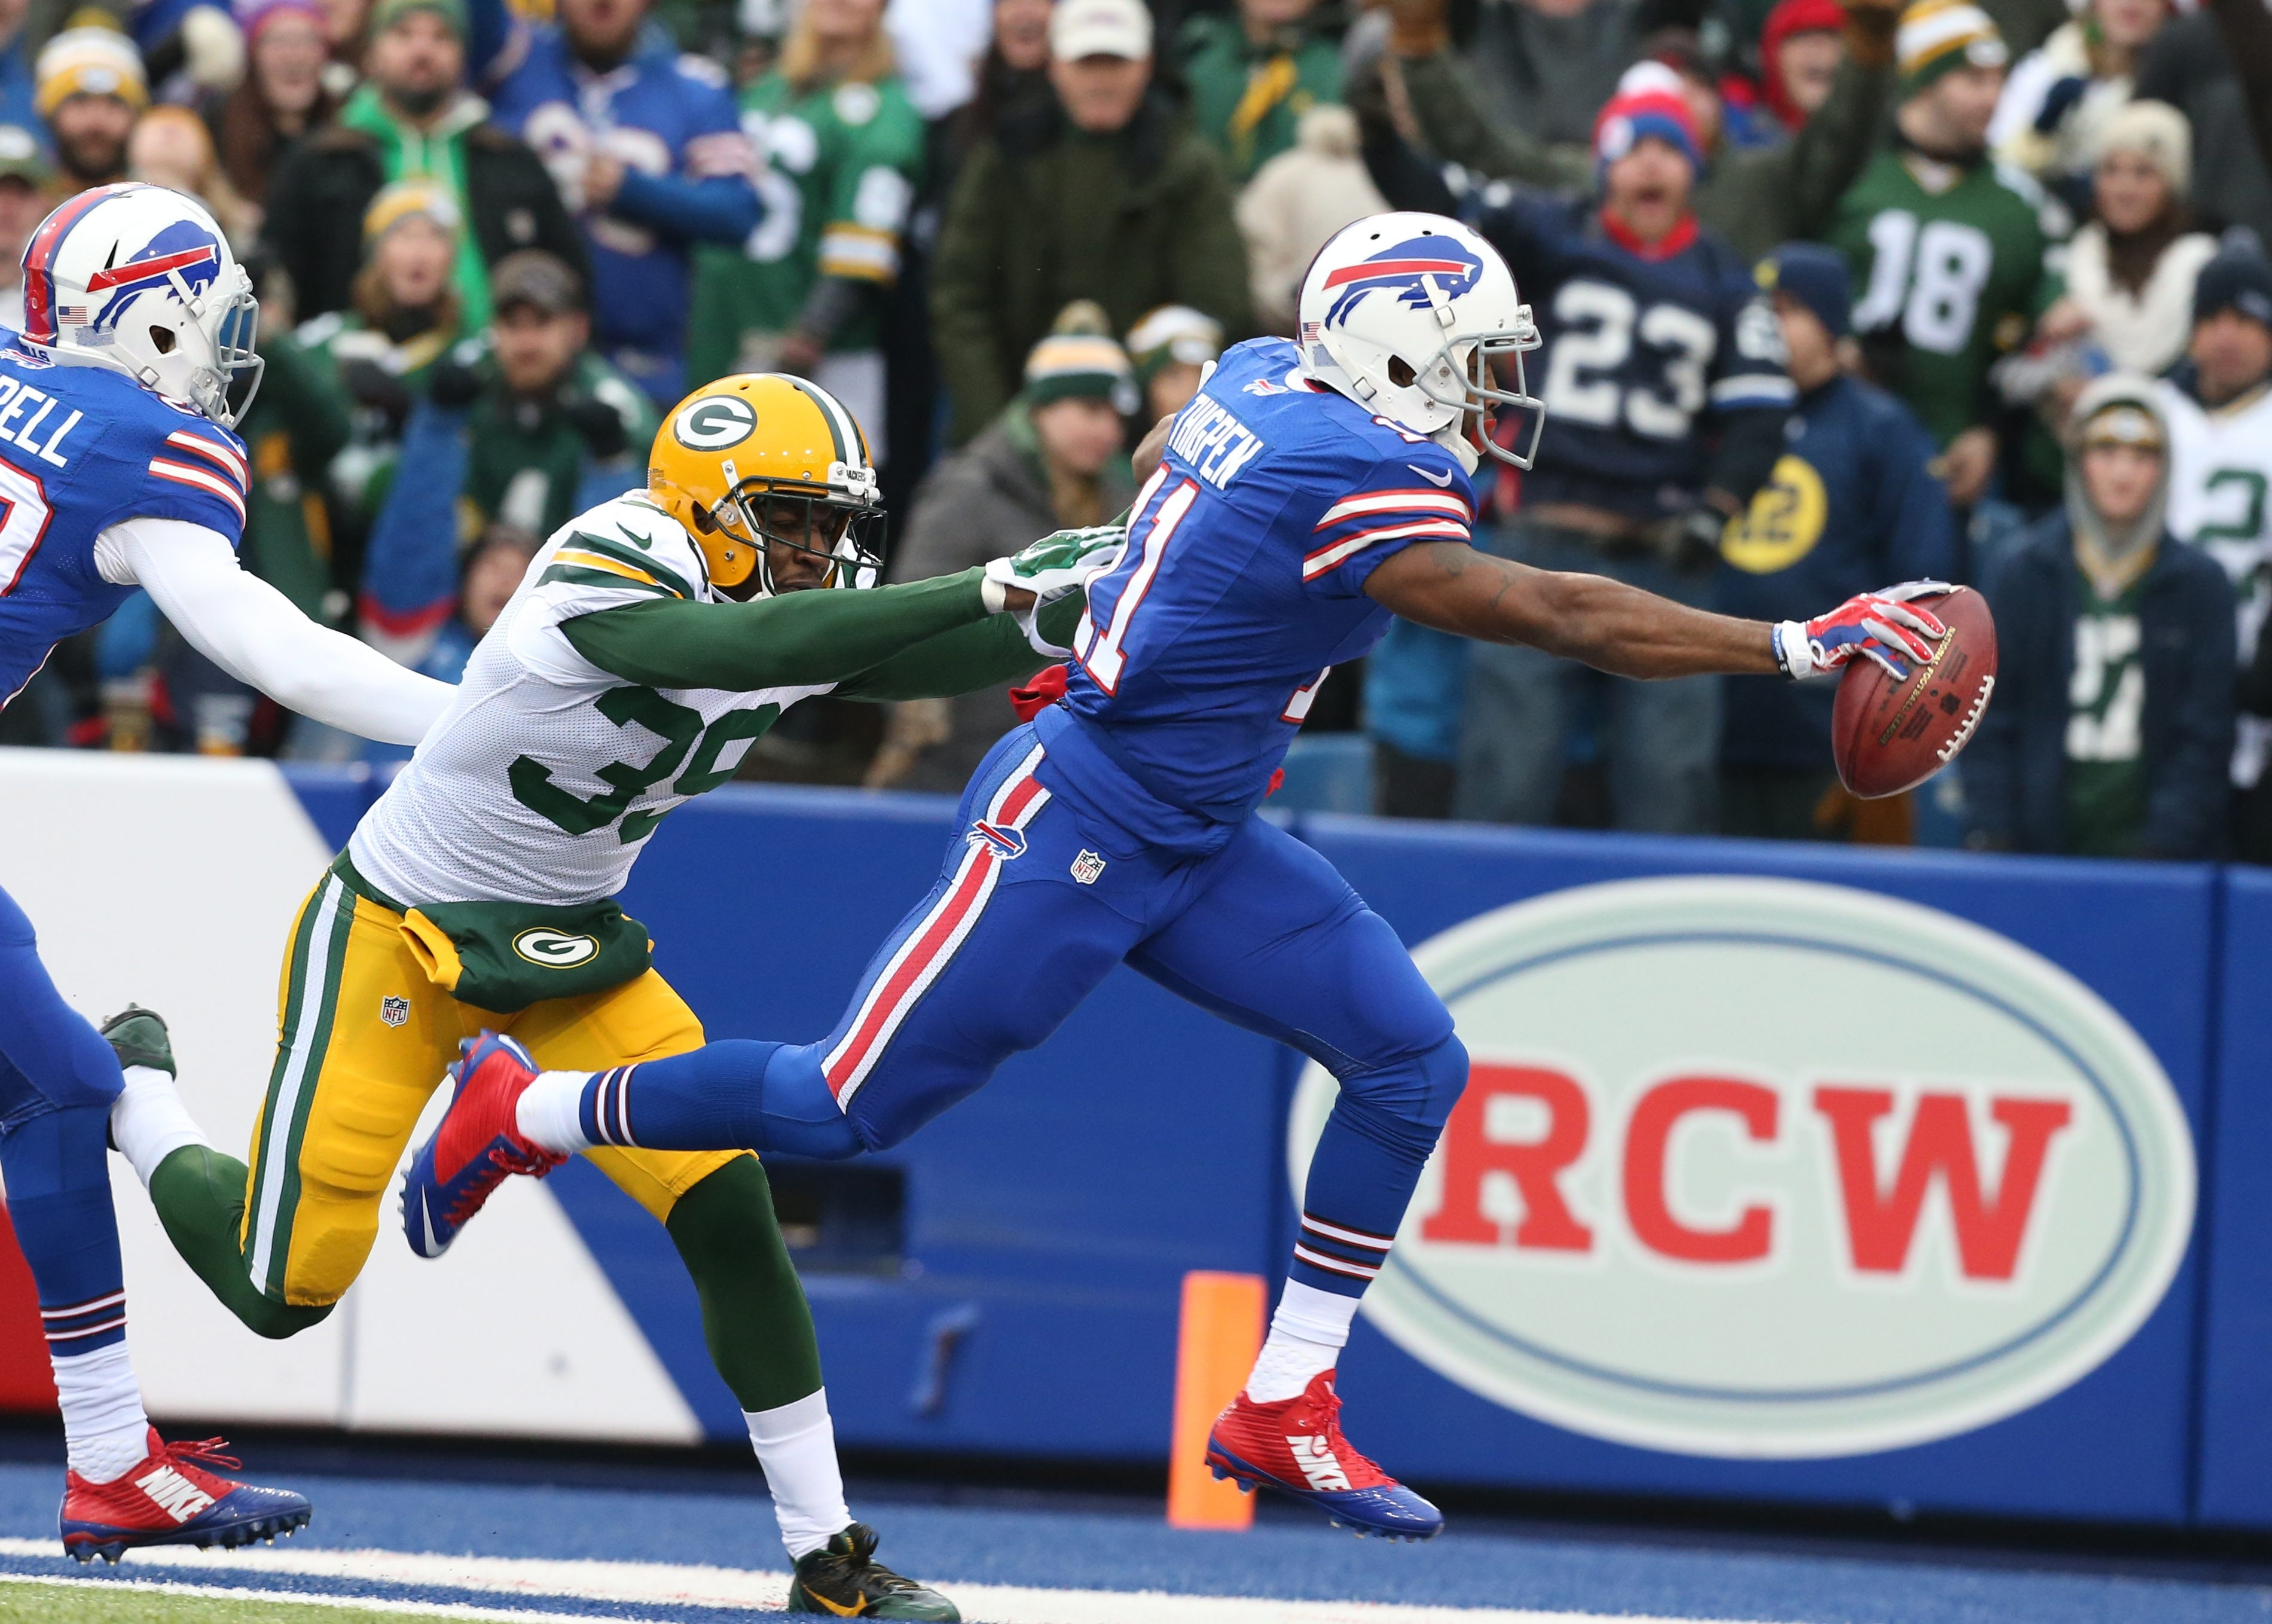 Buffalo Bills running back Marcus Thigpen scores on this punt return against Green Bay last December. He gets to face one of his former teams this Sunday in the Miami Dolphins.  (James P. McCoy/Buffalo News)